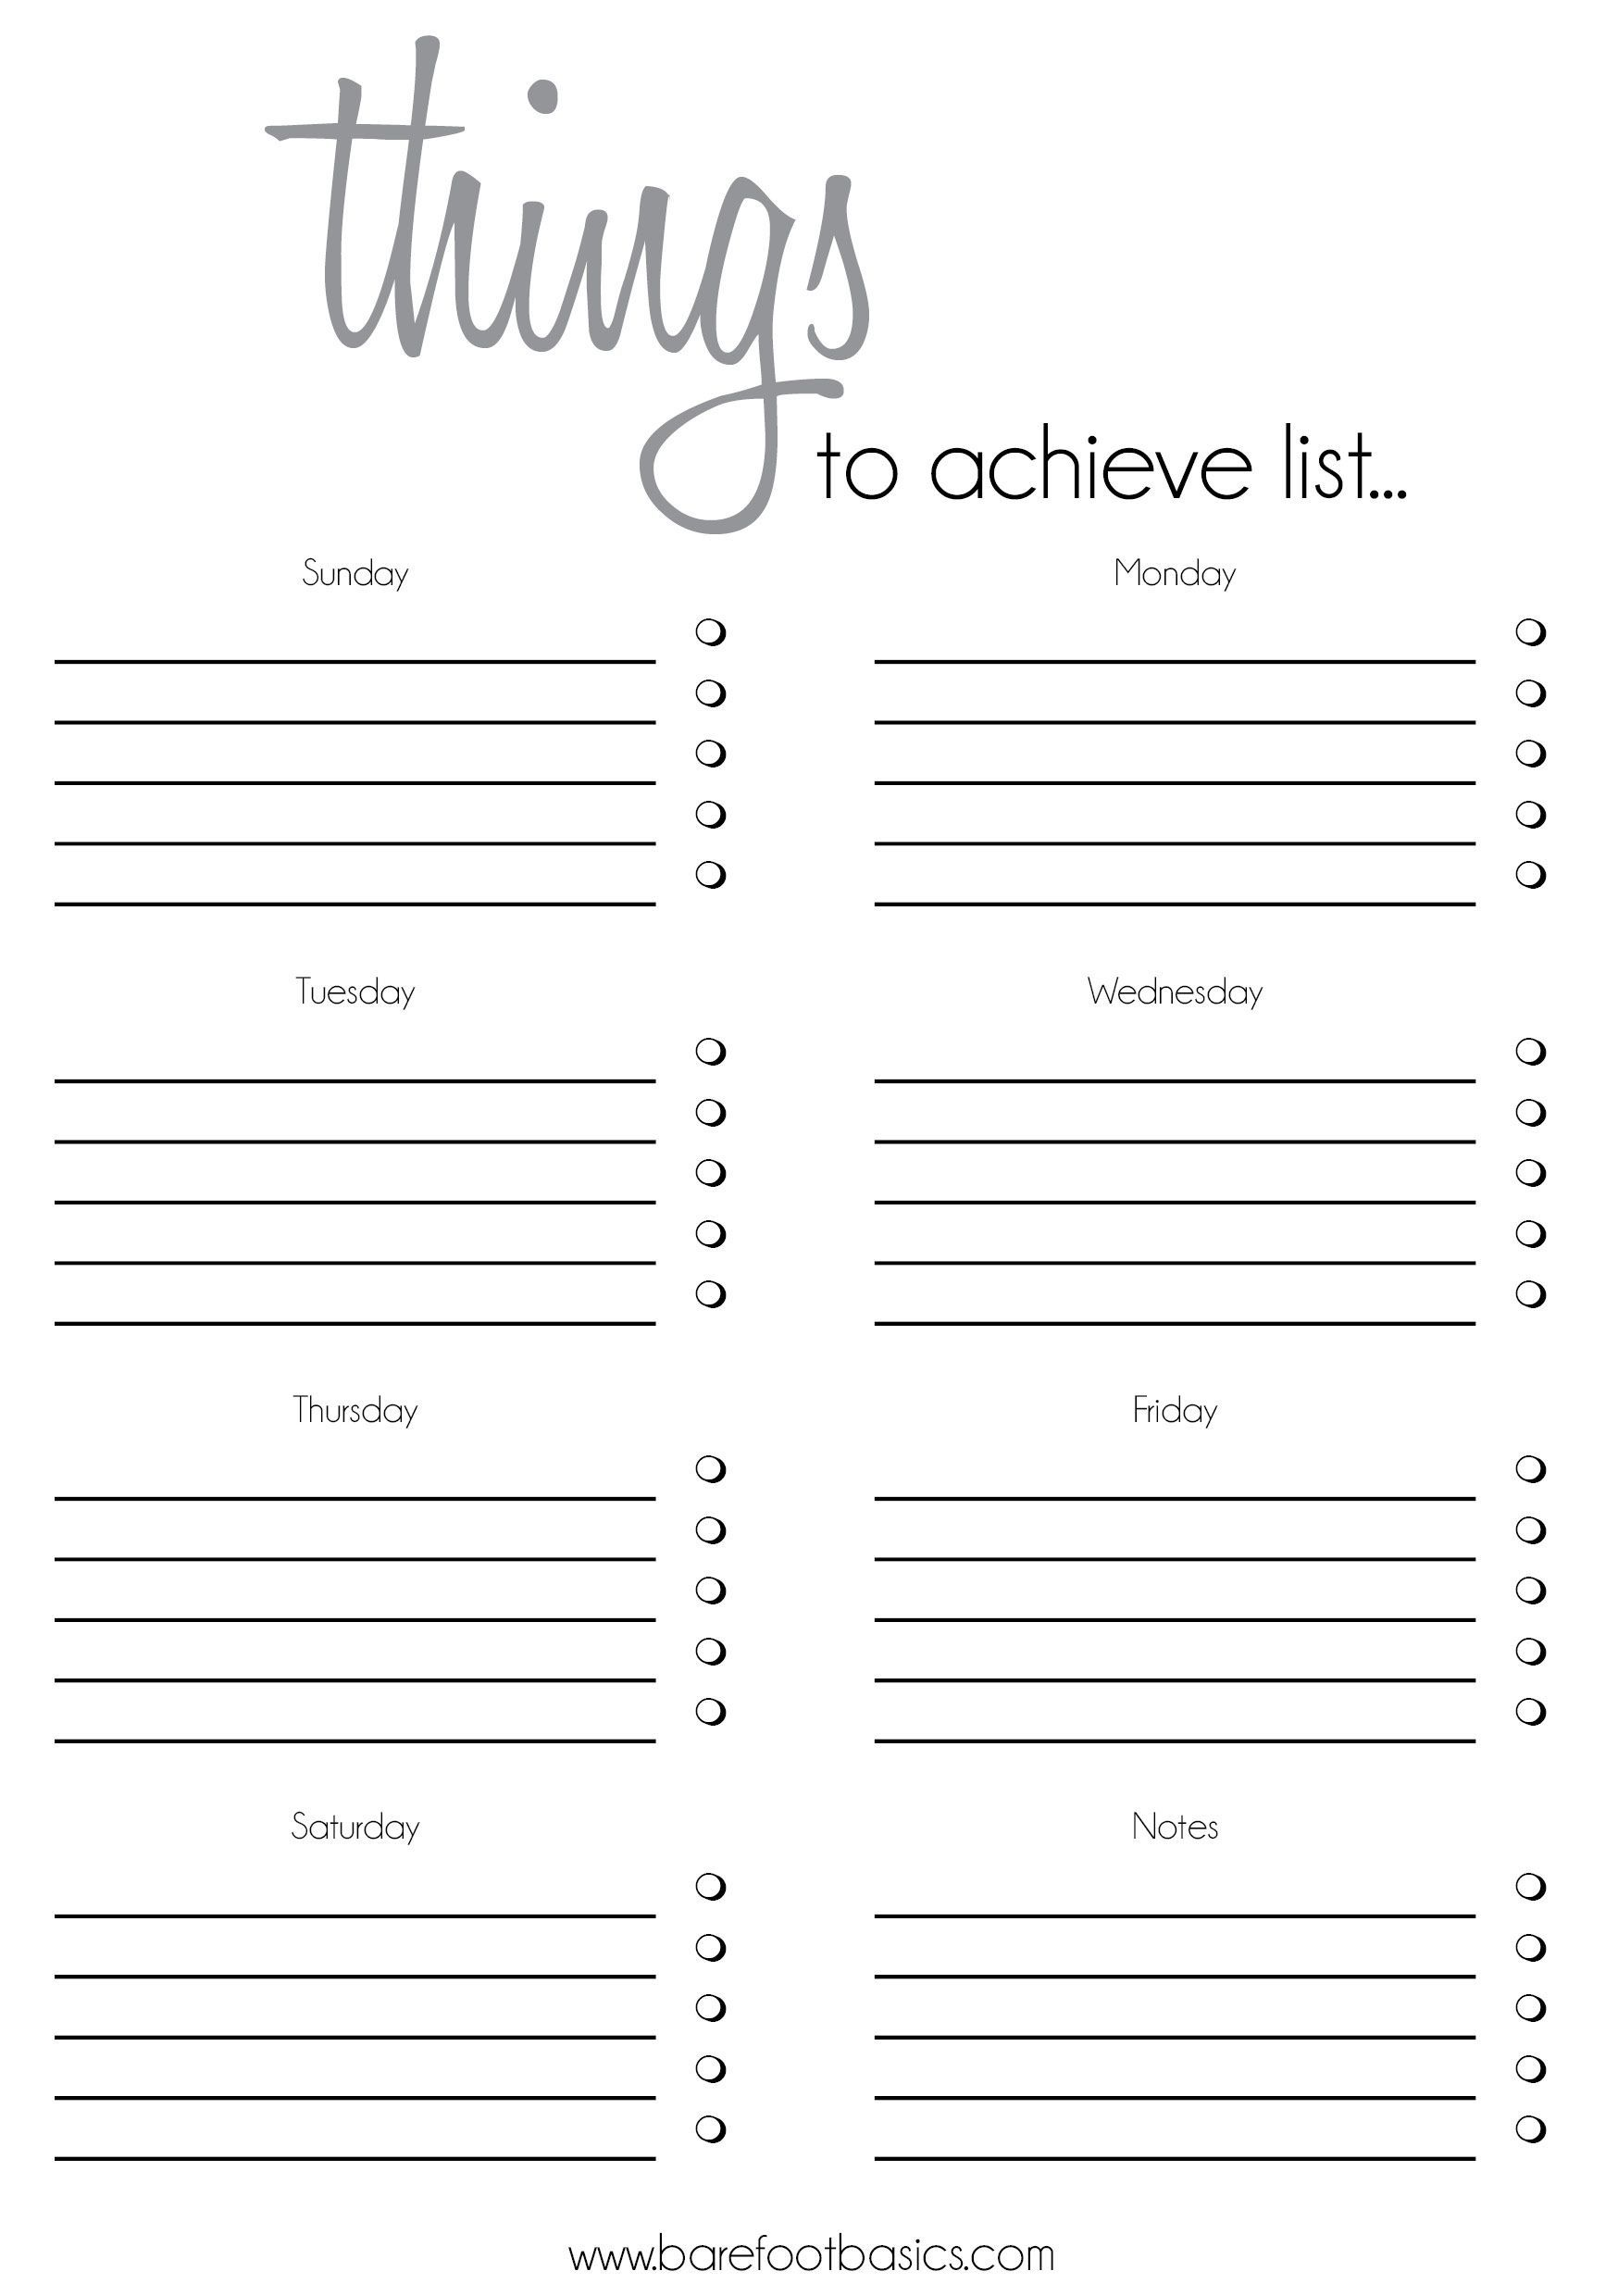 003 Formidable To Do List Template Free Idea Full